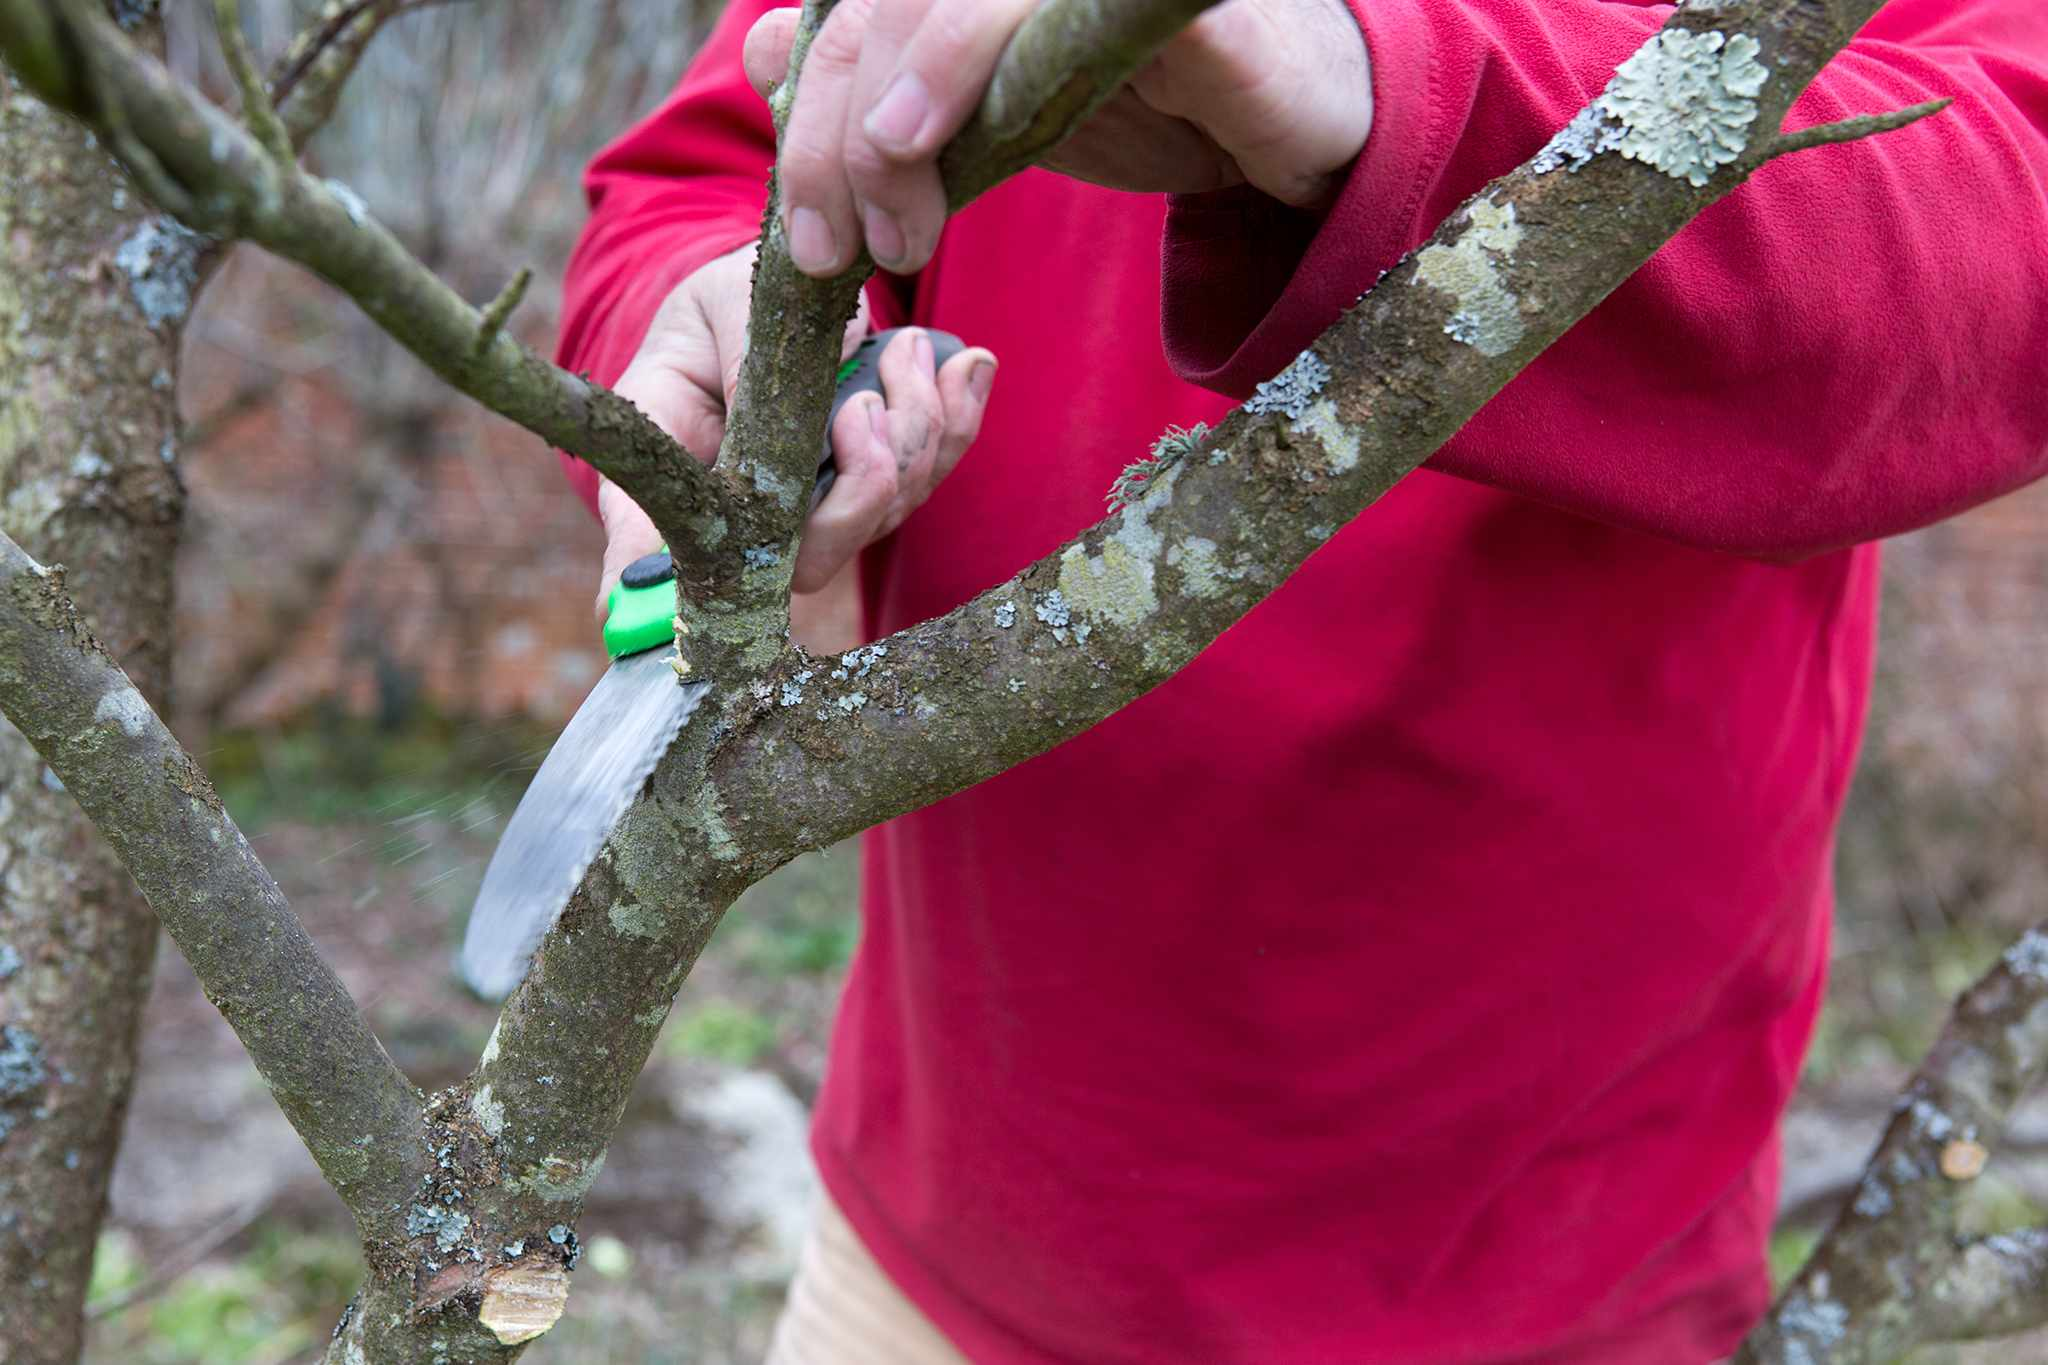 Using a pruning saw on thicker branches